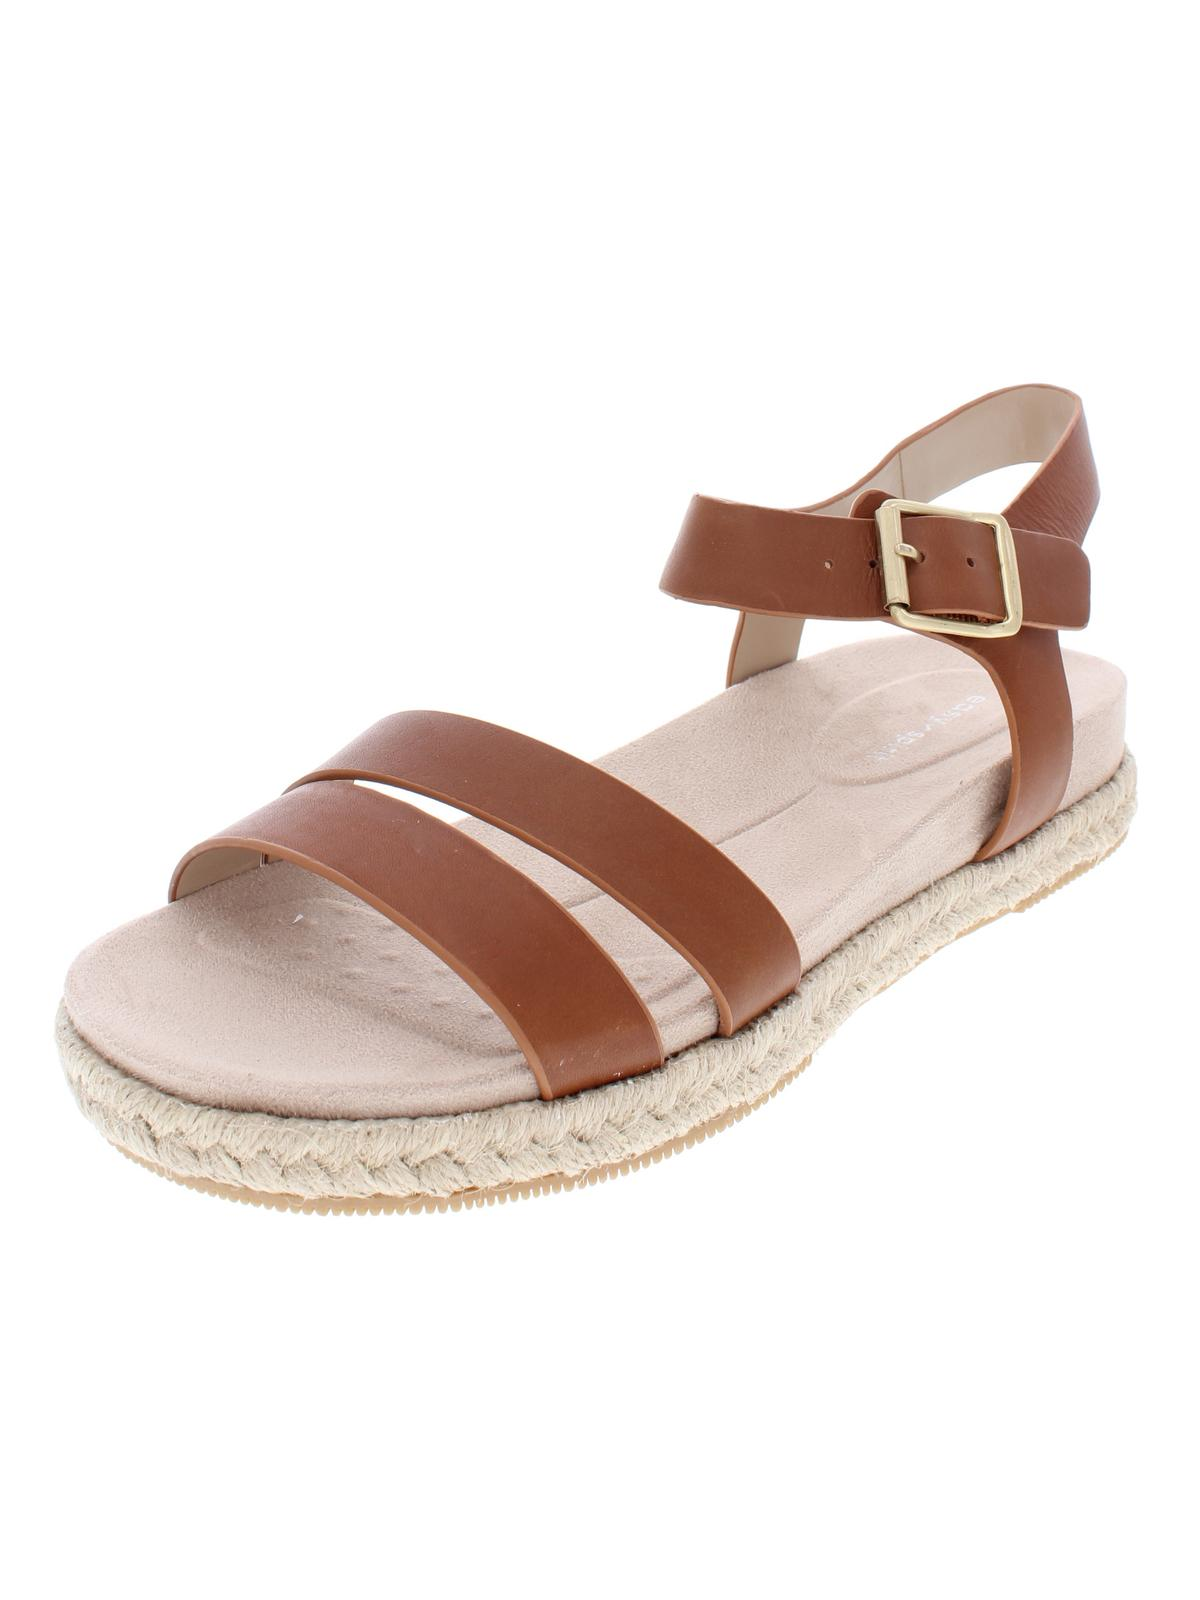 Easy Spirit Womens Ixia Solid Leather Espadrilles